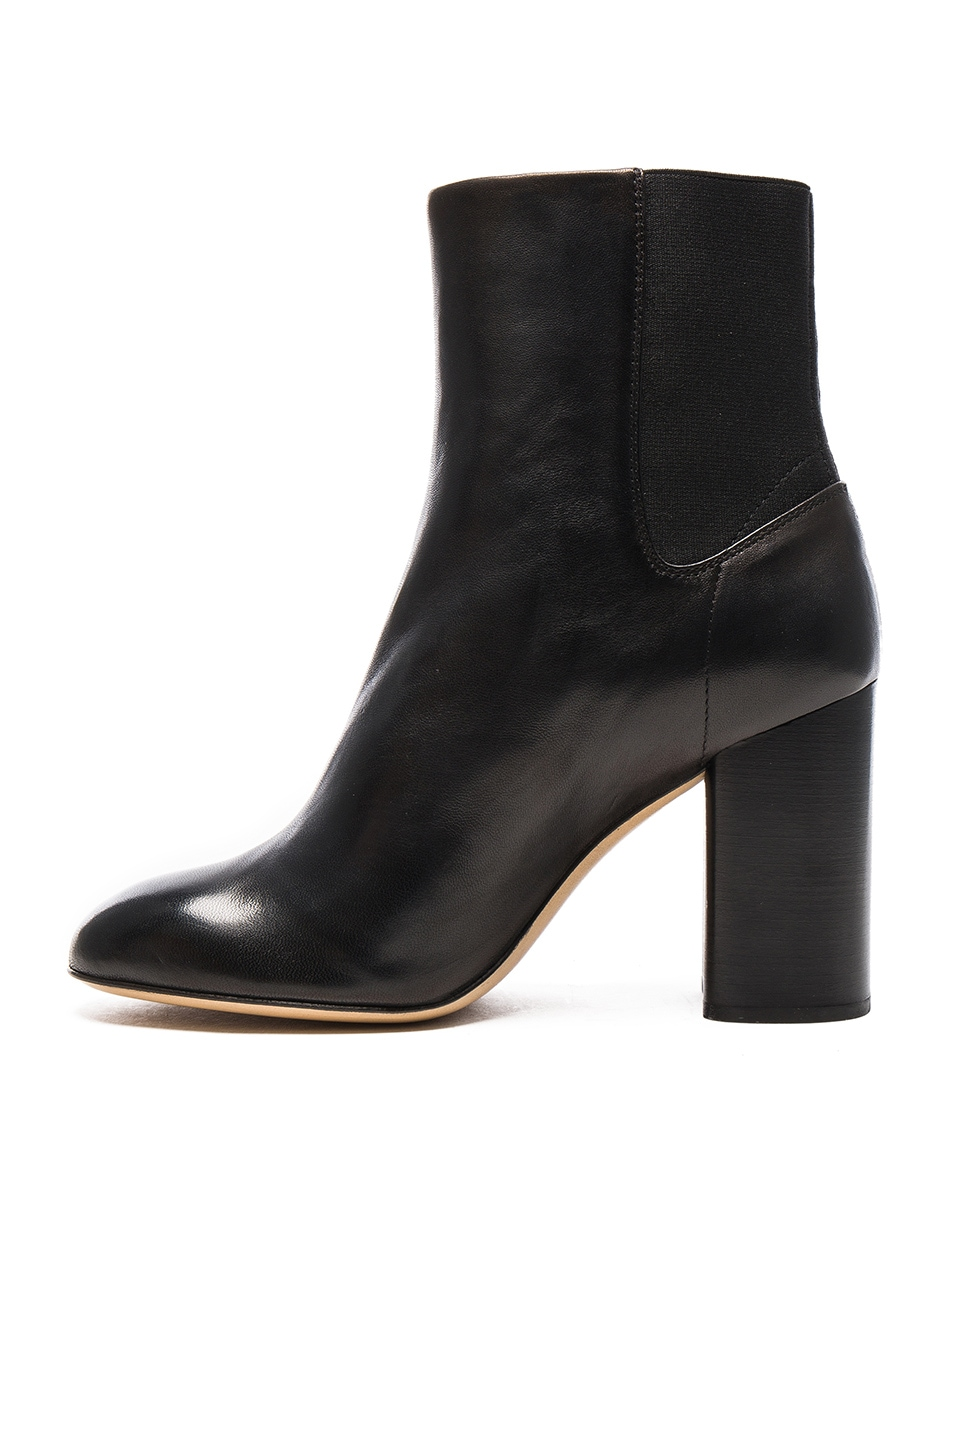 Image 5 of Rag & Bone Leather Agnes Booties in Black